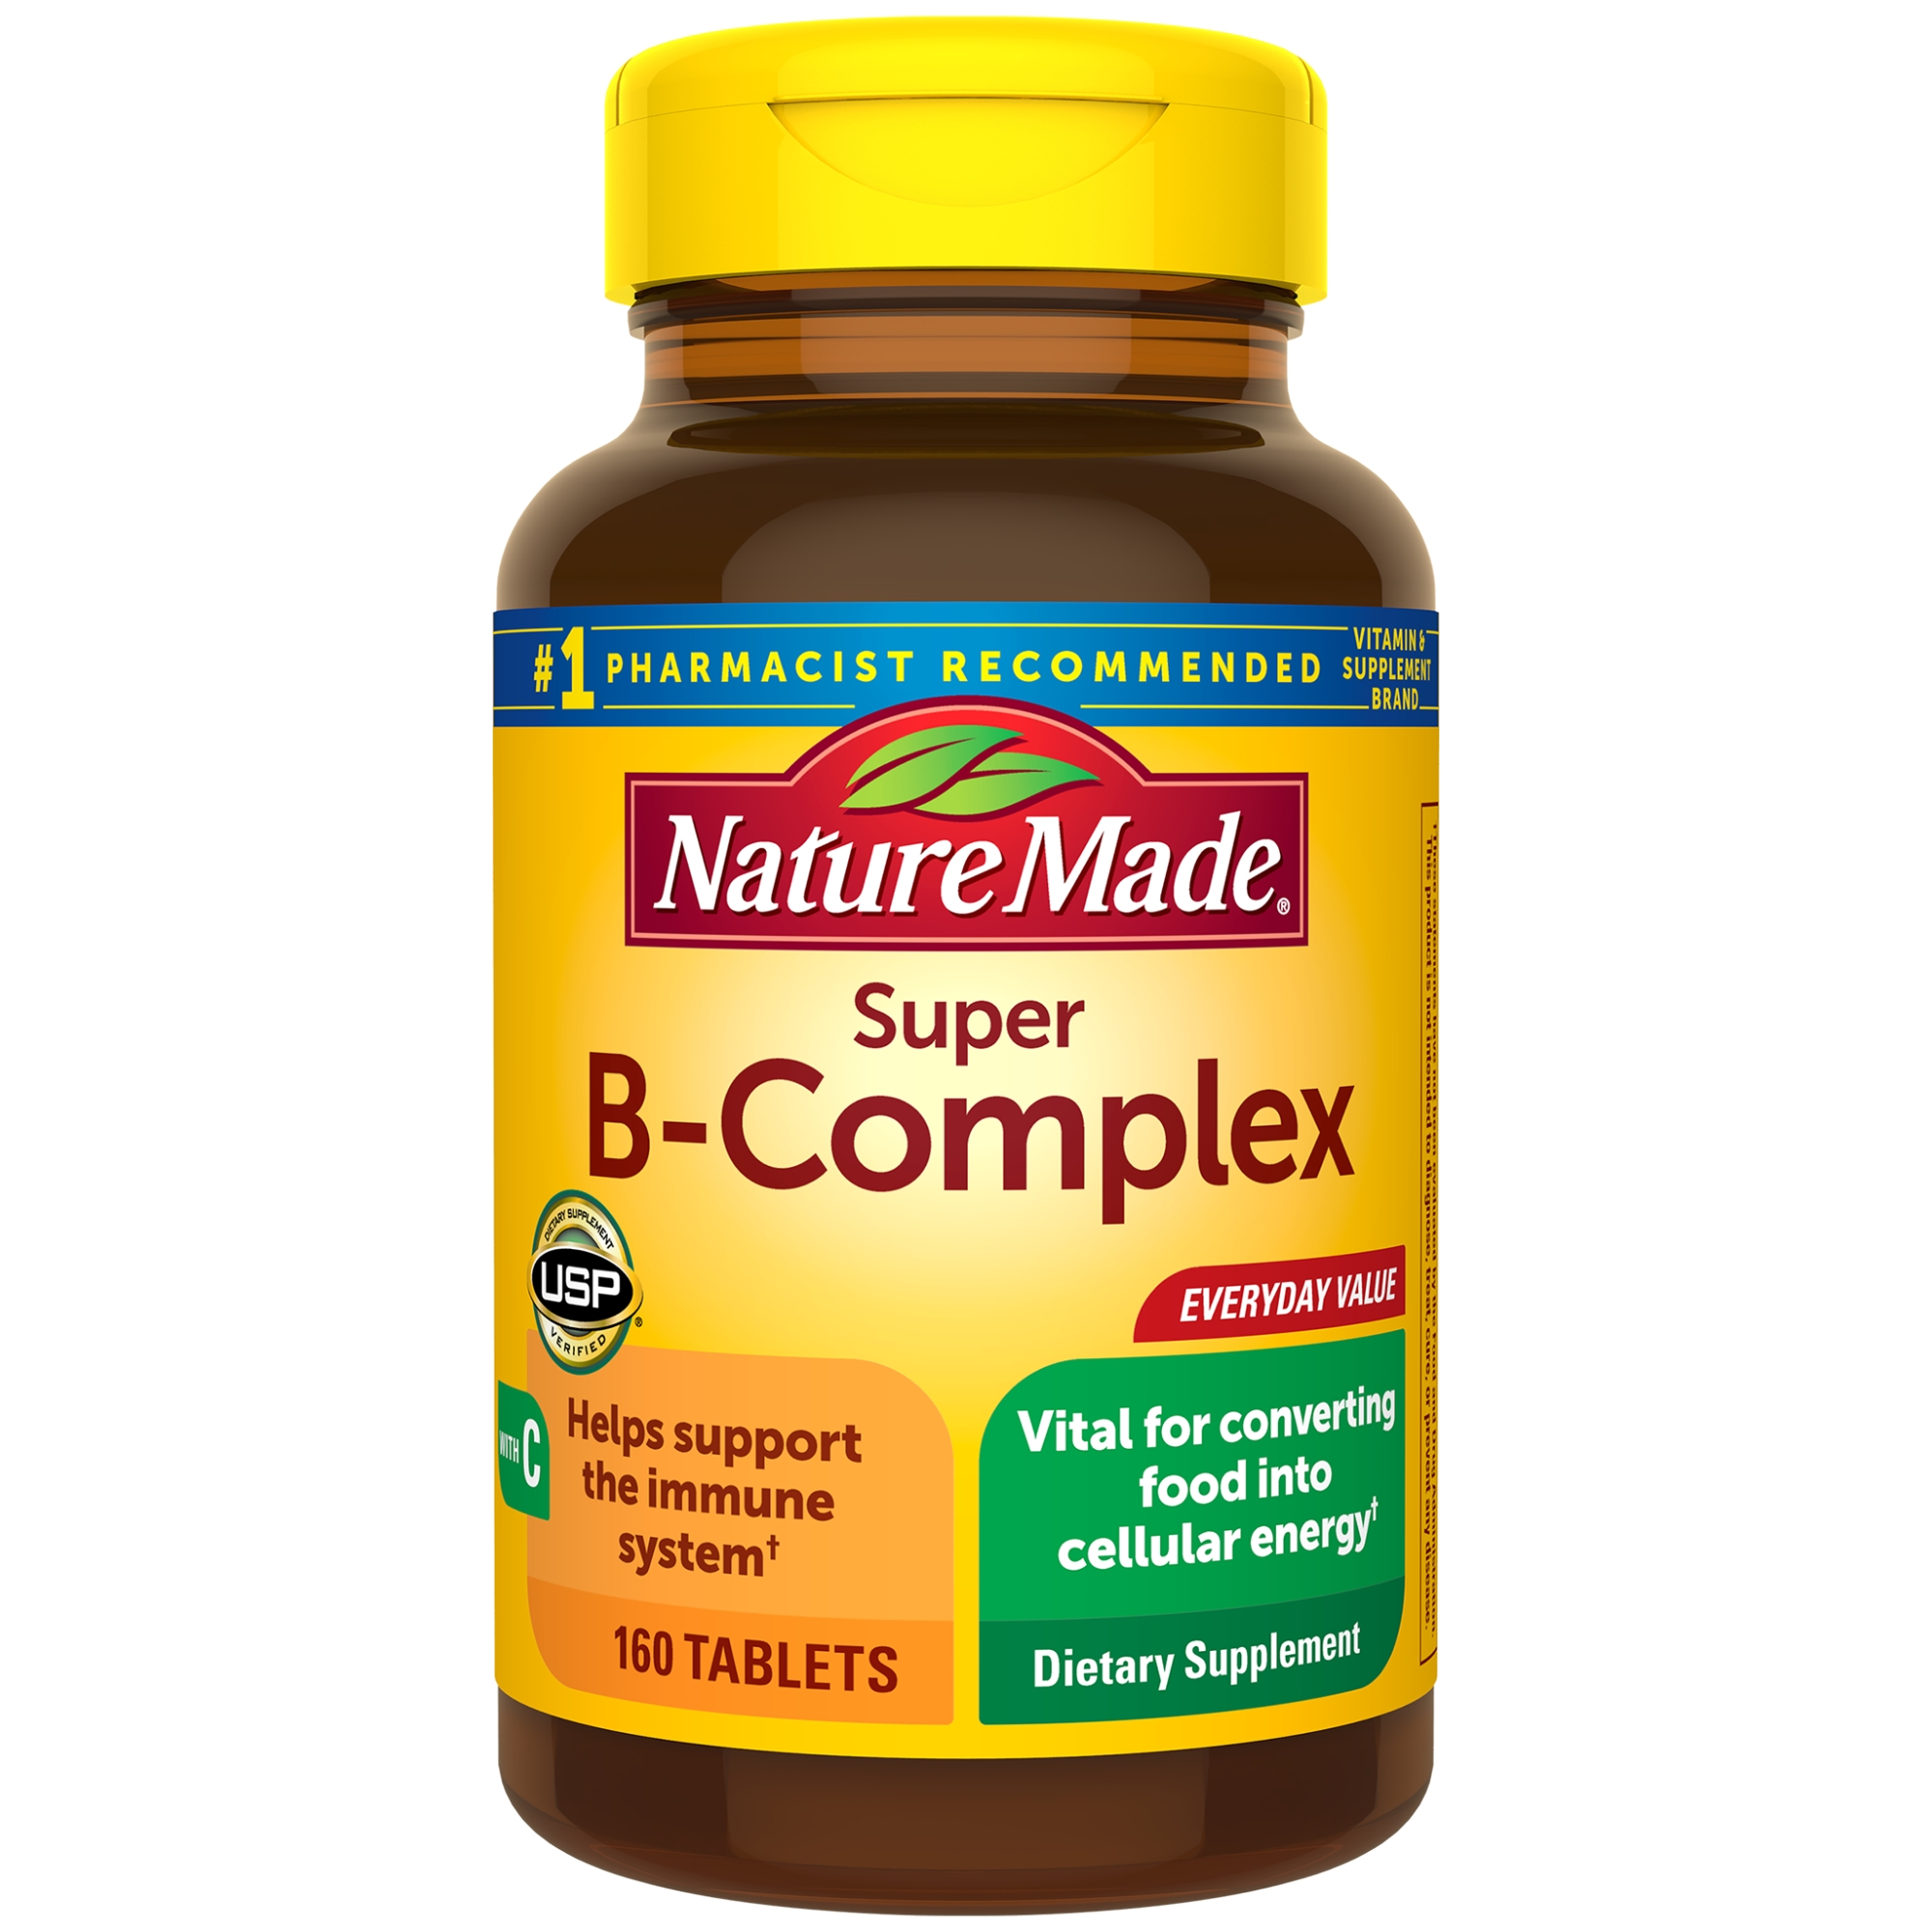 Nature Made Super B-Complex Tablets, 160 Count for Metabolic Health?